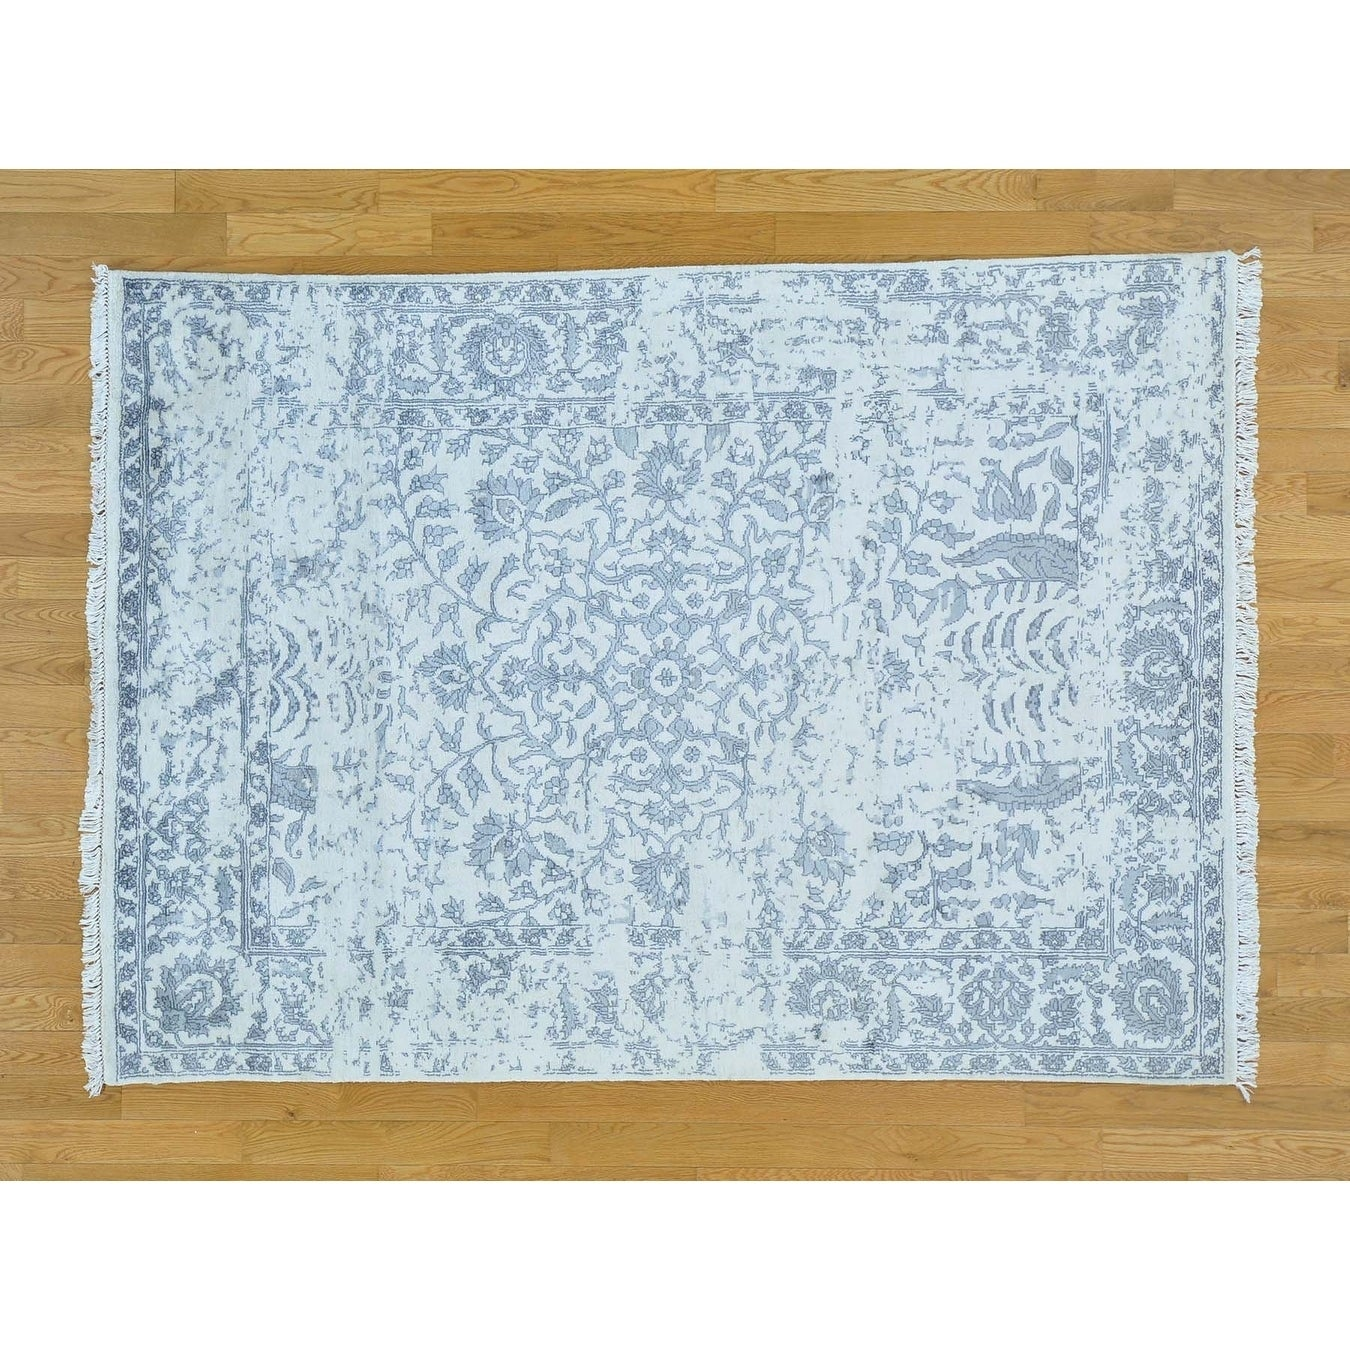 Hand Knotted Ivory Modern & Contemporary with Art Silk Oriental Rug - 5'2 x 7'